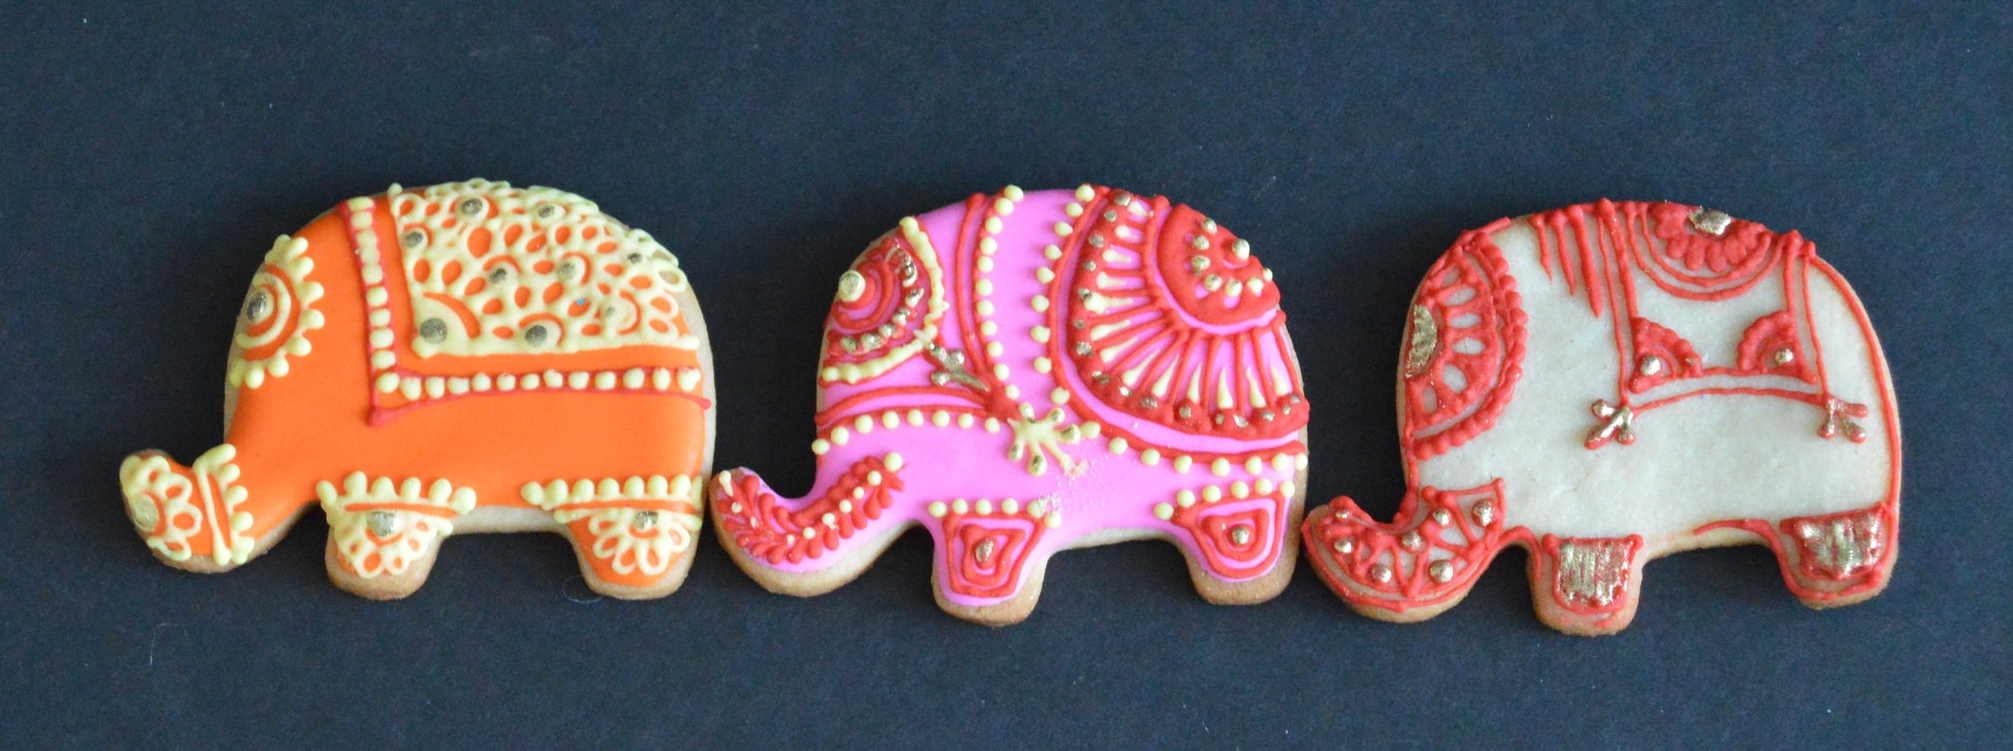 Elephant henna cookies from Bake Me Something make the perfect gifts for your guests!